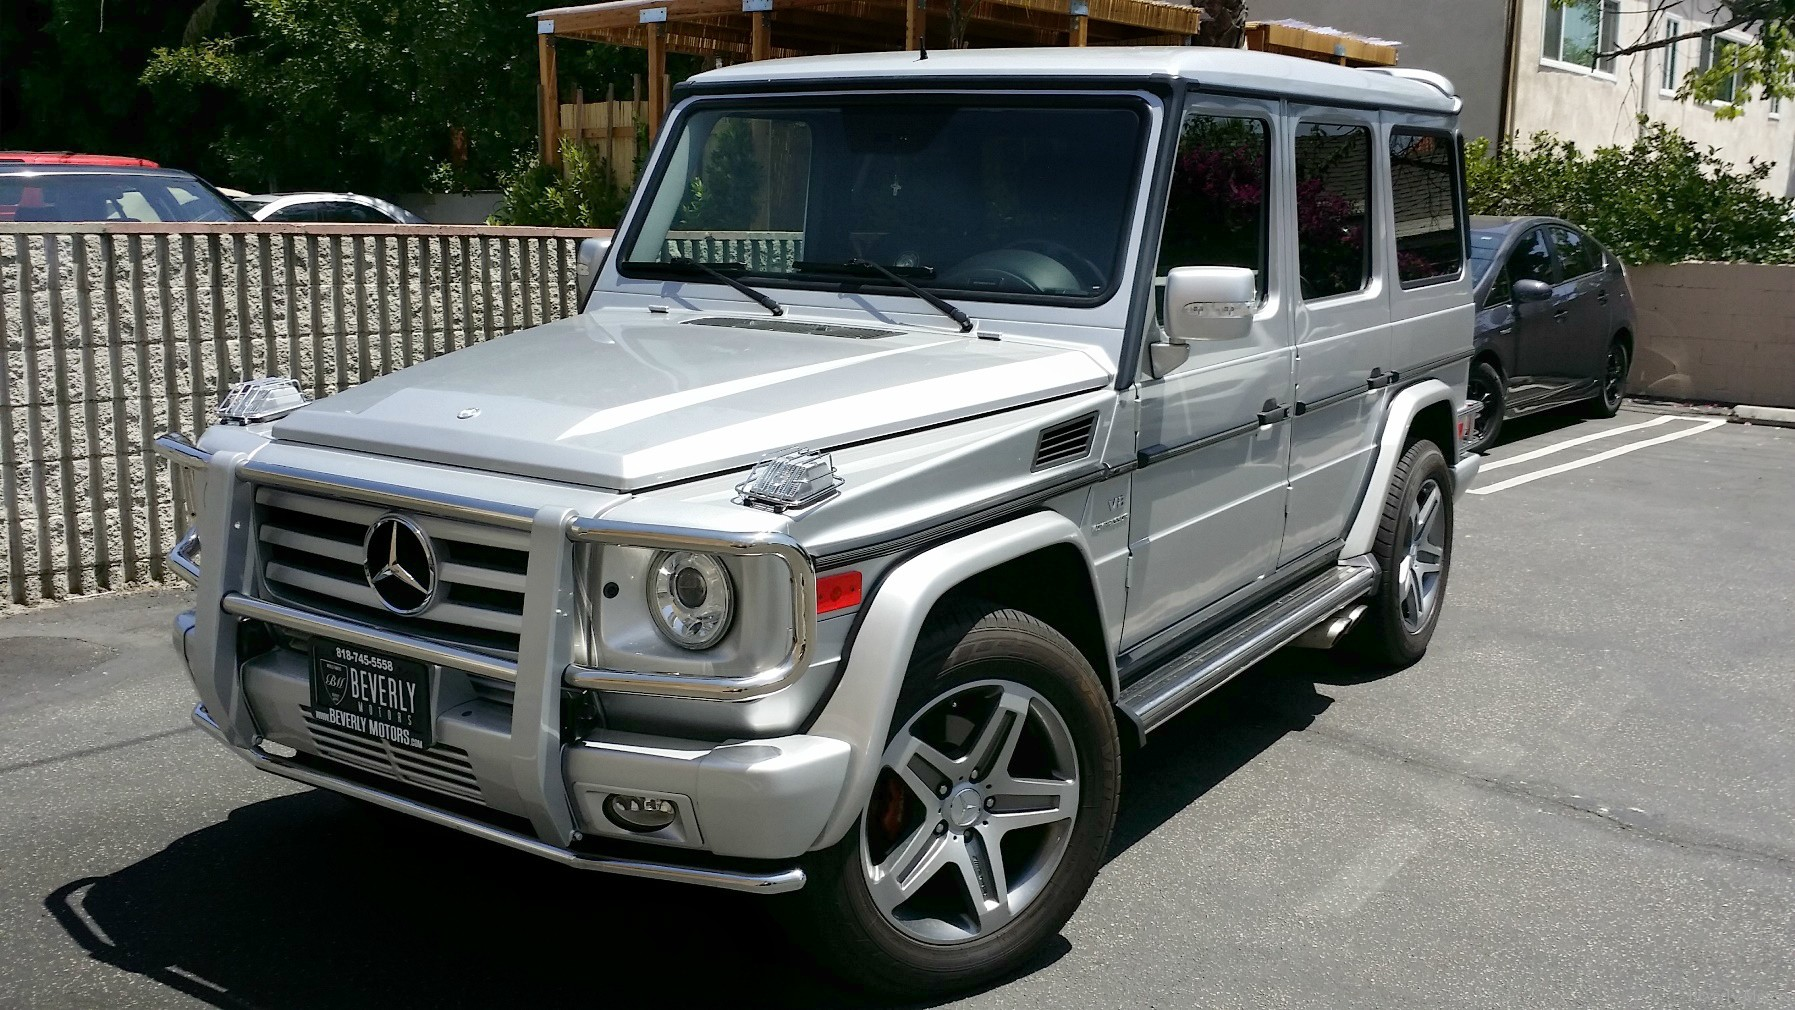 2004 mercedes benz g500 g wagon gwagen gelik for sale glendale auto. Black Bedroom Furniture Sets. Home Design Ideas